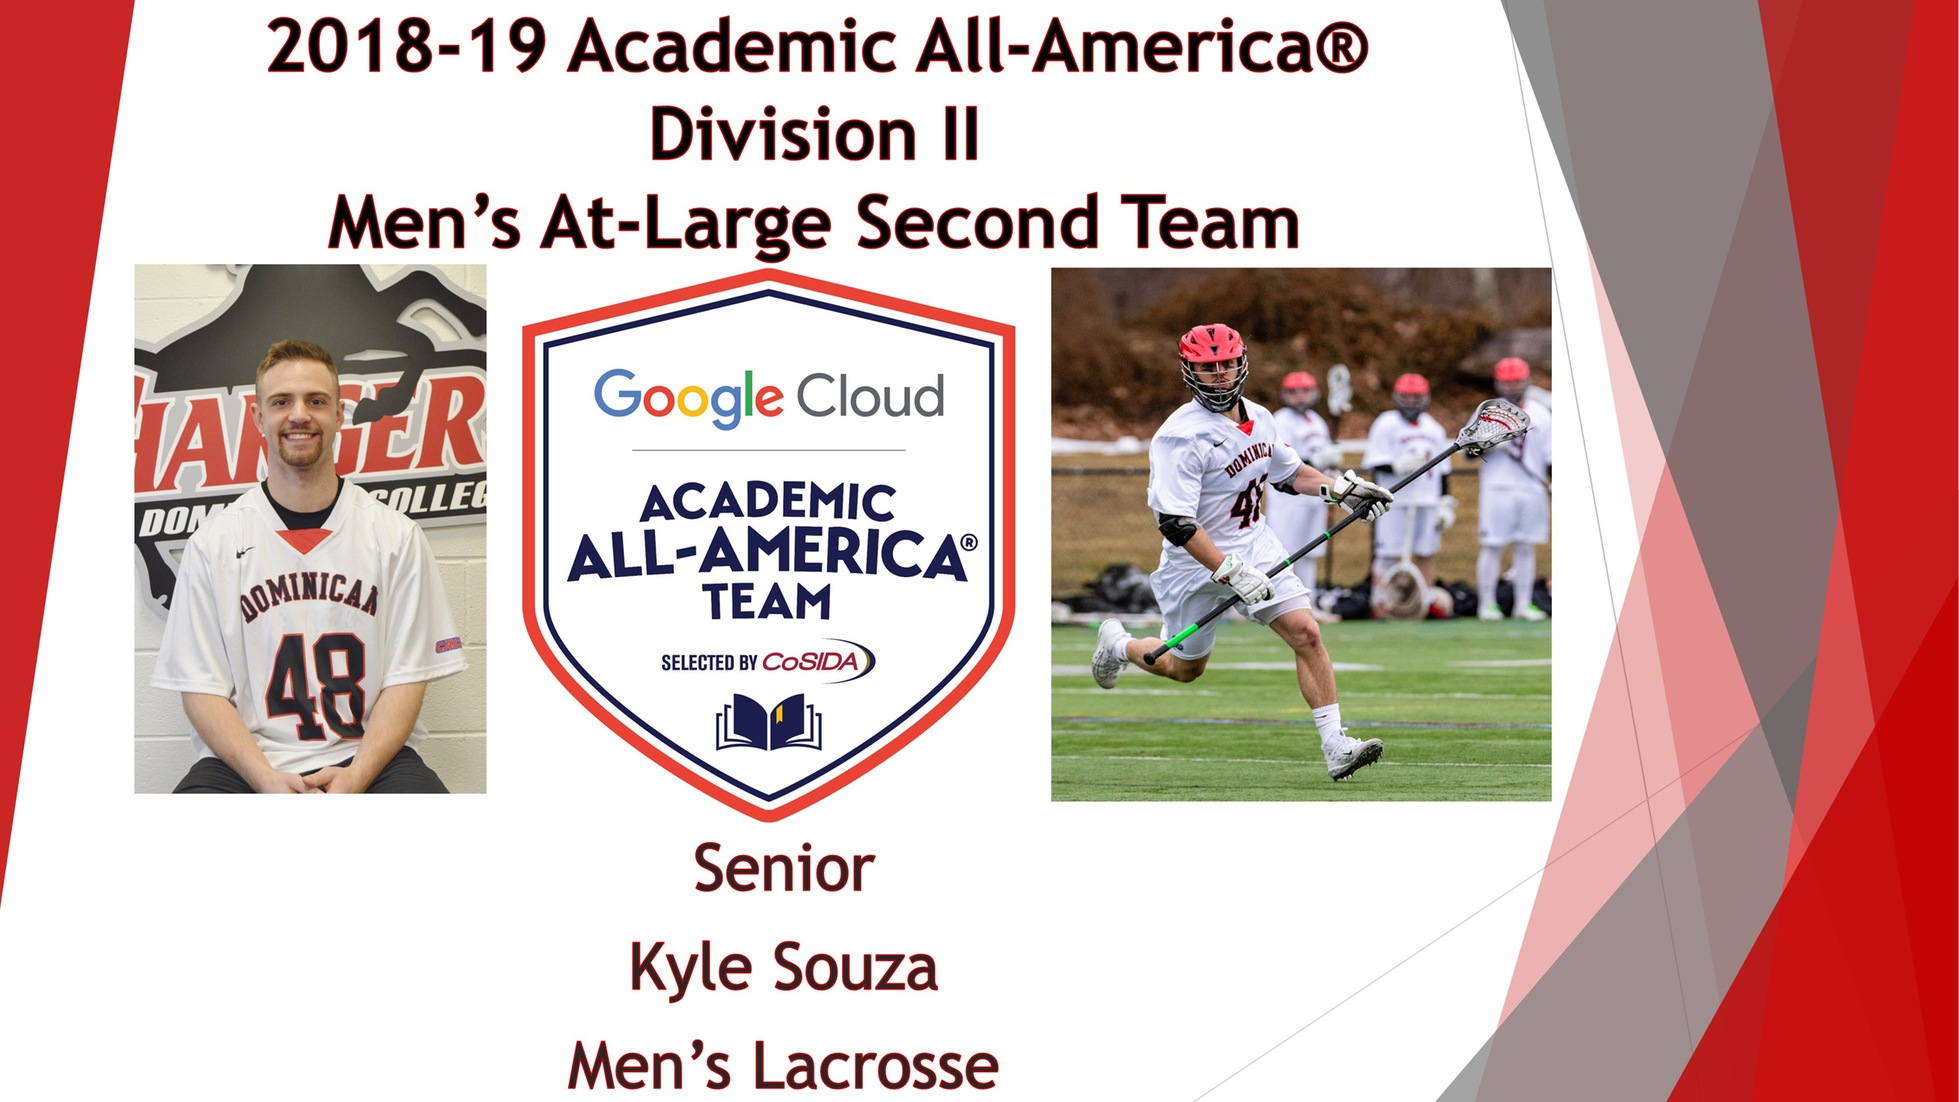 SOUZA EARNS SECOND CONSECUTIVE GOOGLE CLOUD ACADEMIC ALL-AMERICA® HONORS